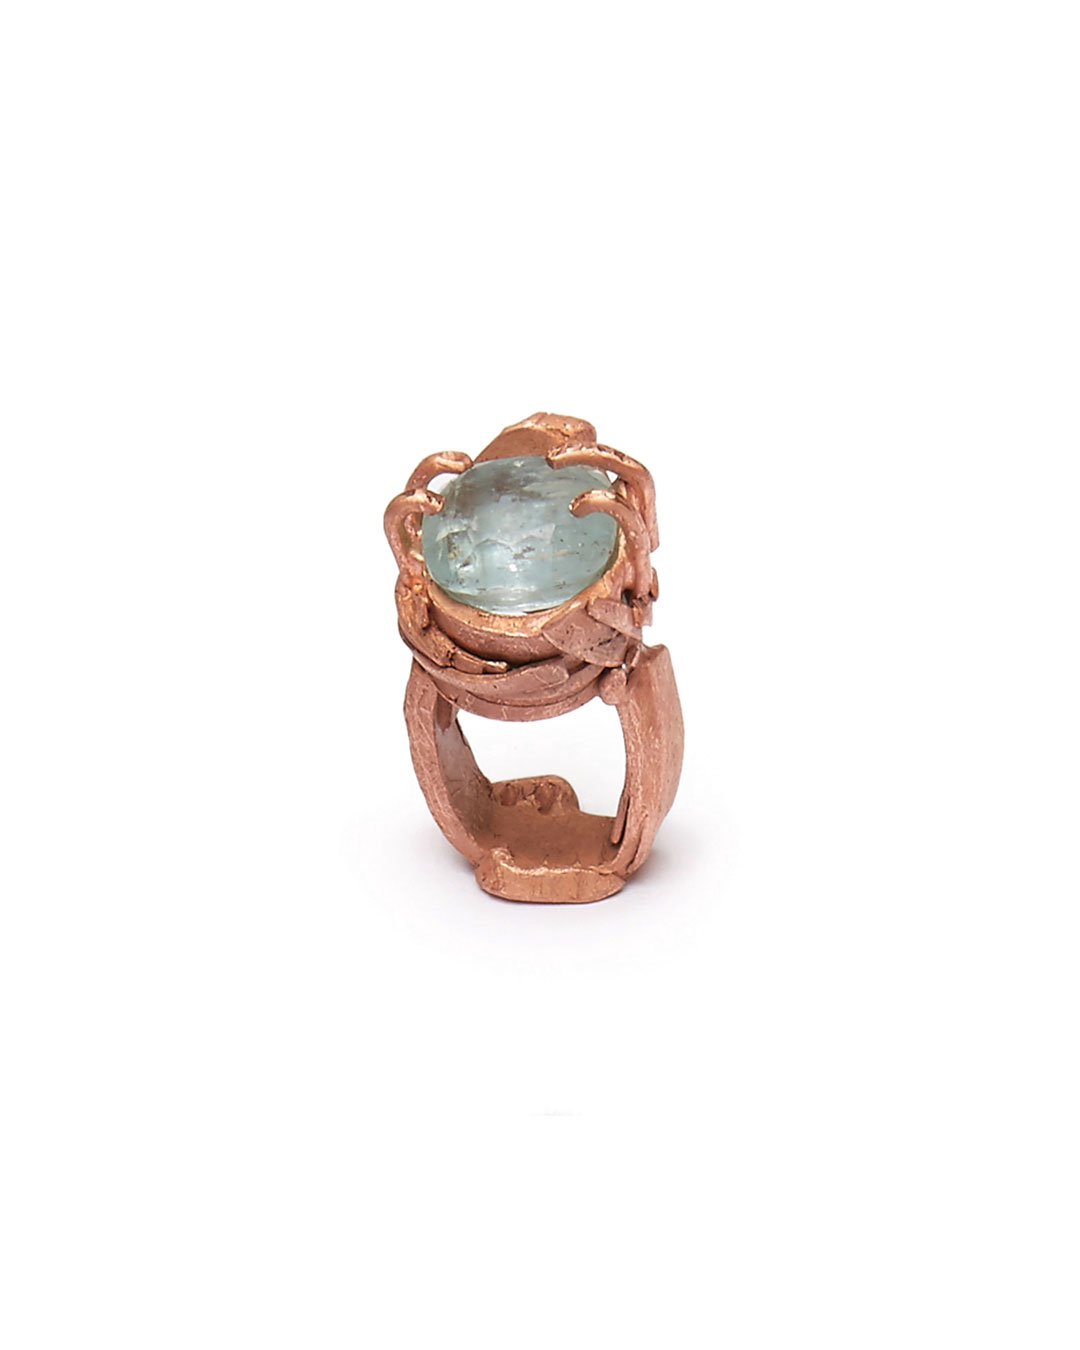 Iris Bodemer, Notizen (Notes), 2016, ring; bronze, aquamarine, 40 x 25 x 25 mm, €1250